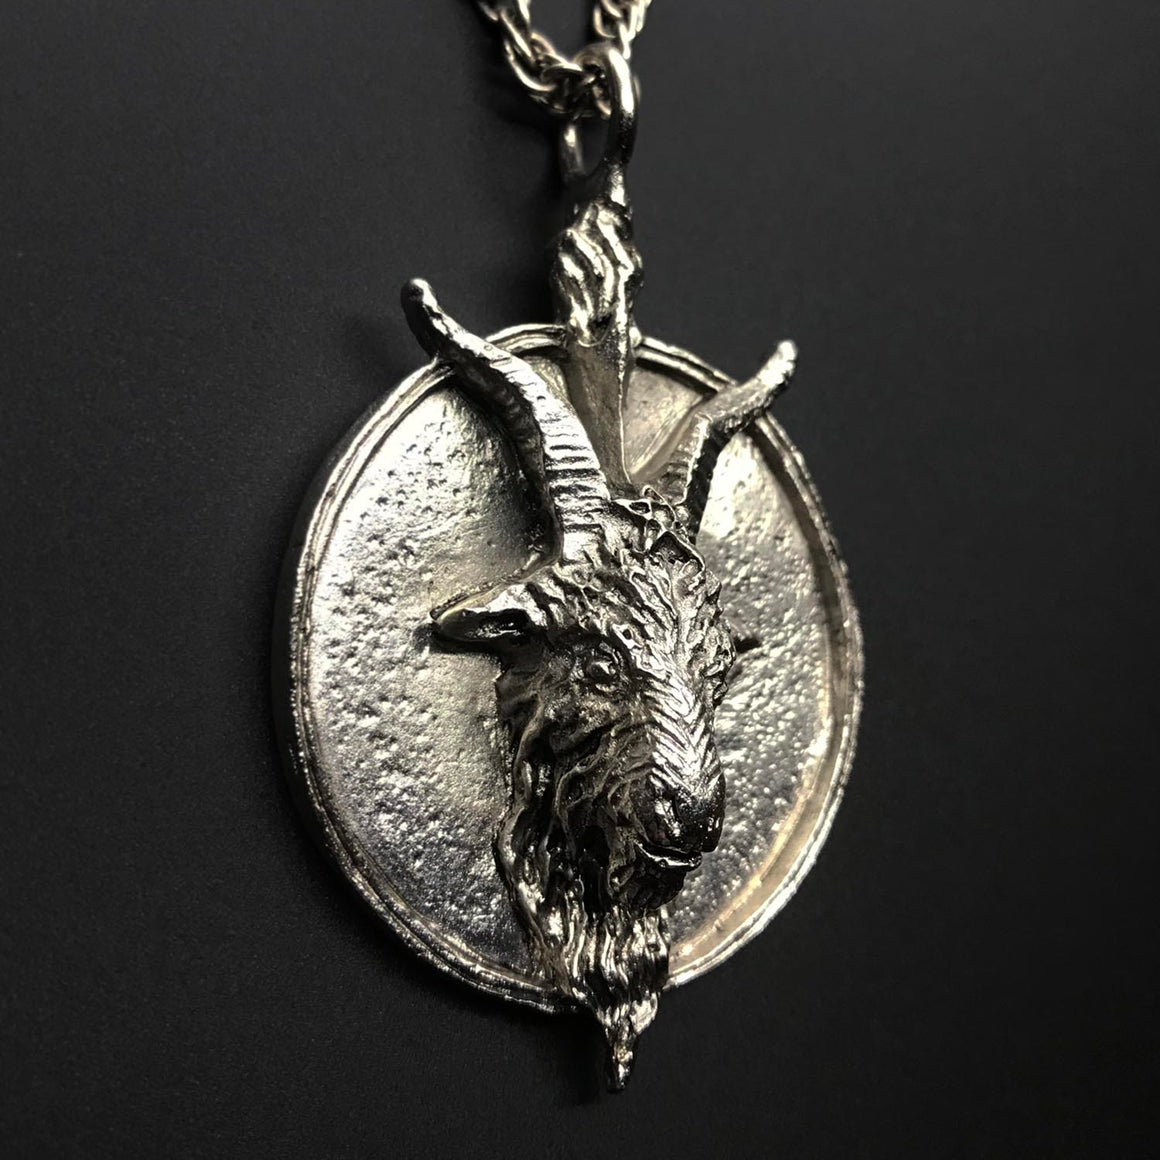 TST Baphomet Pendant Designed by Dellamorte & Co.